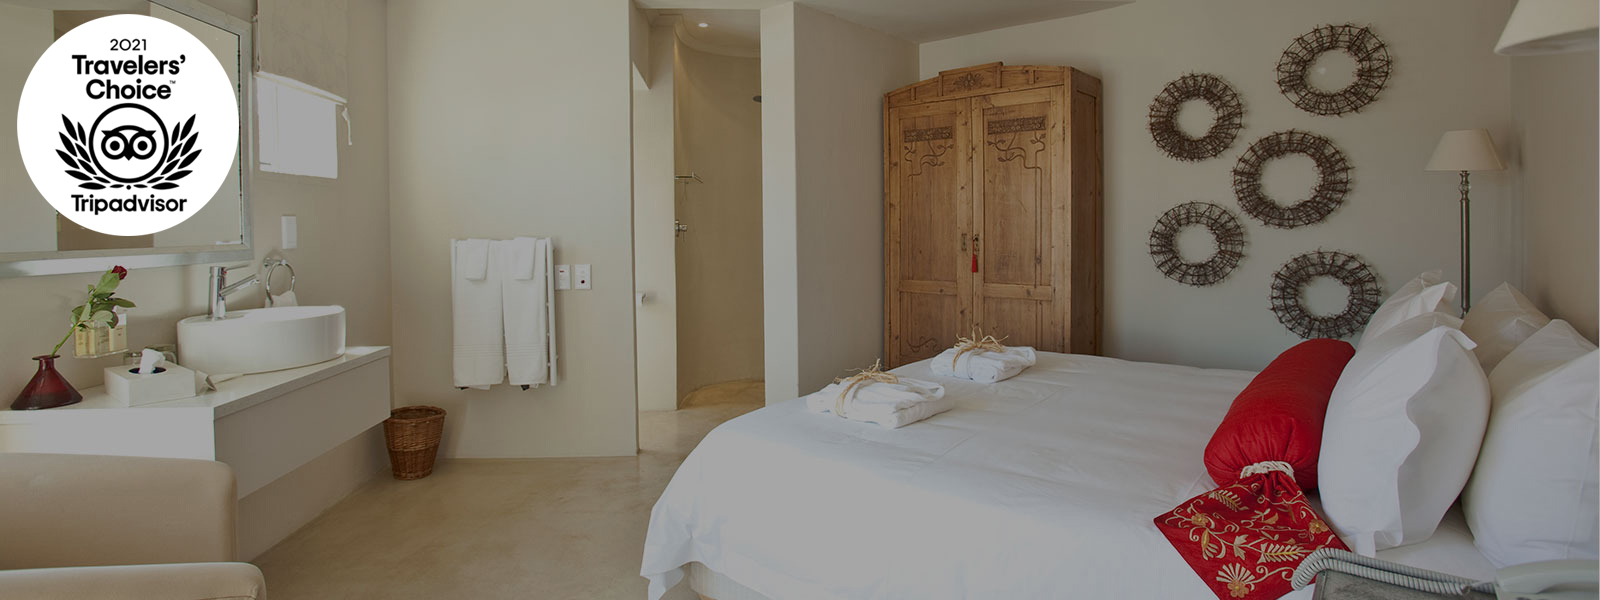 self-catering-sub-banner